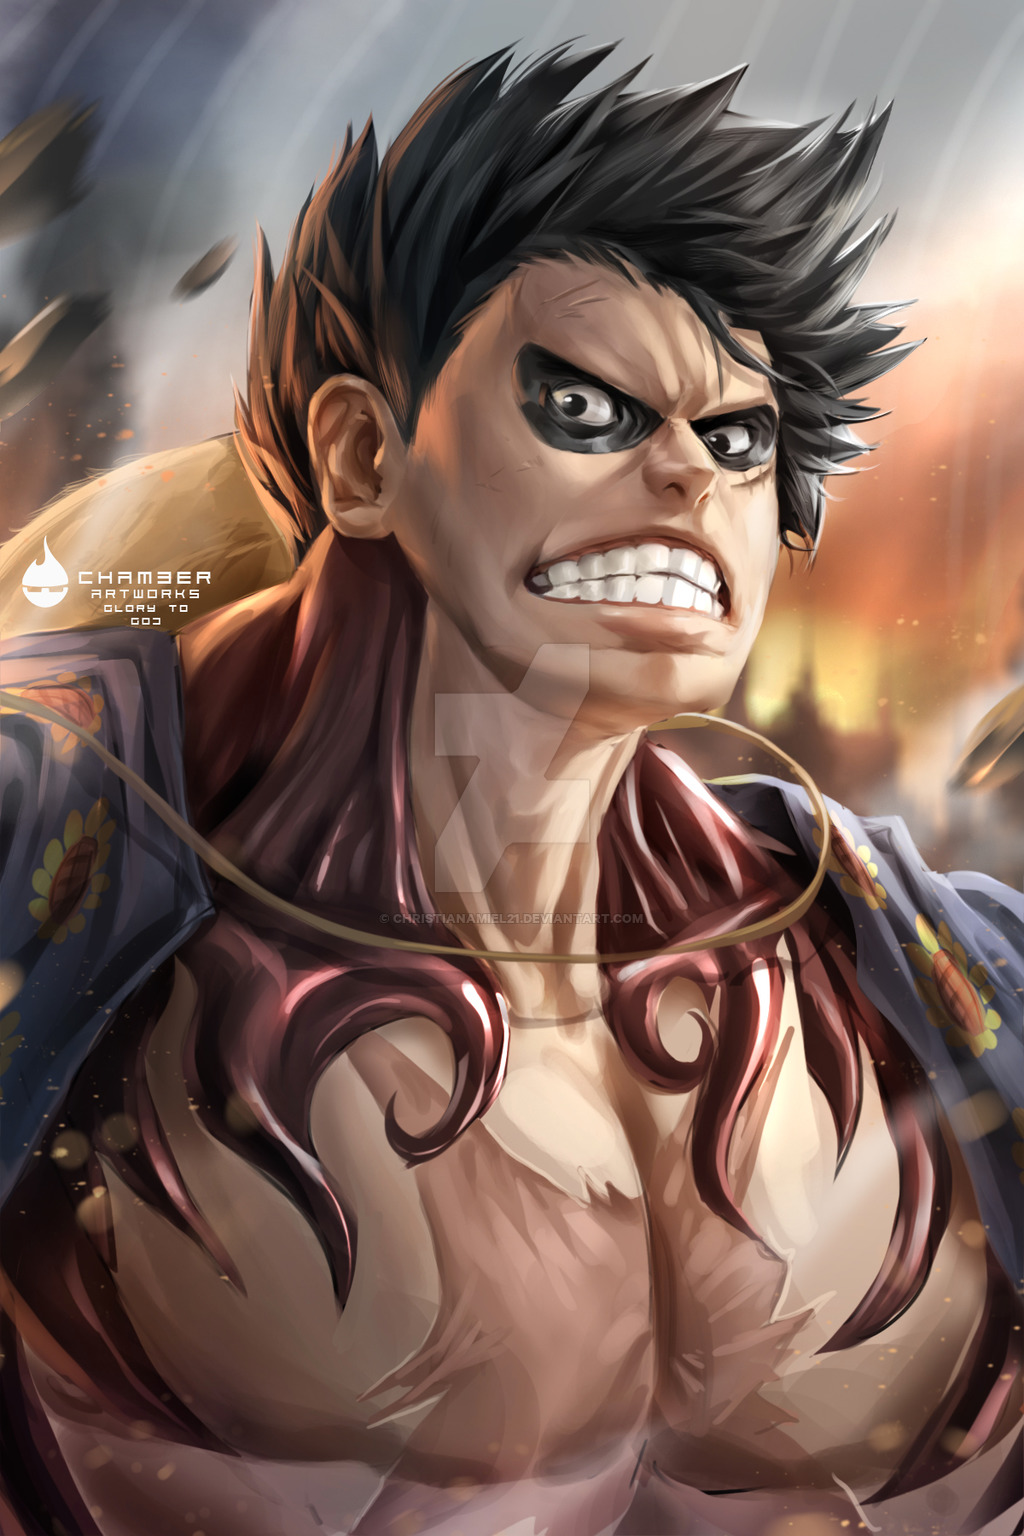 Monkey D Luffy One Piece Image 2348090 Zerochan